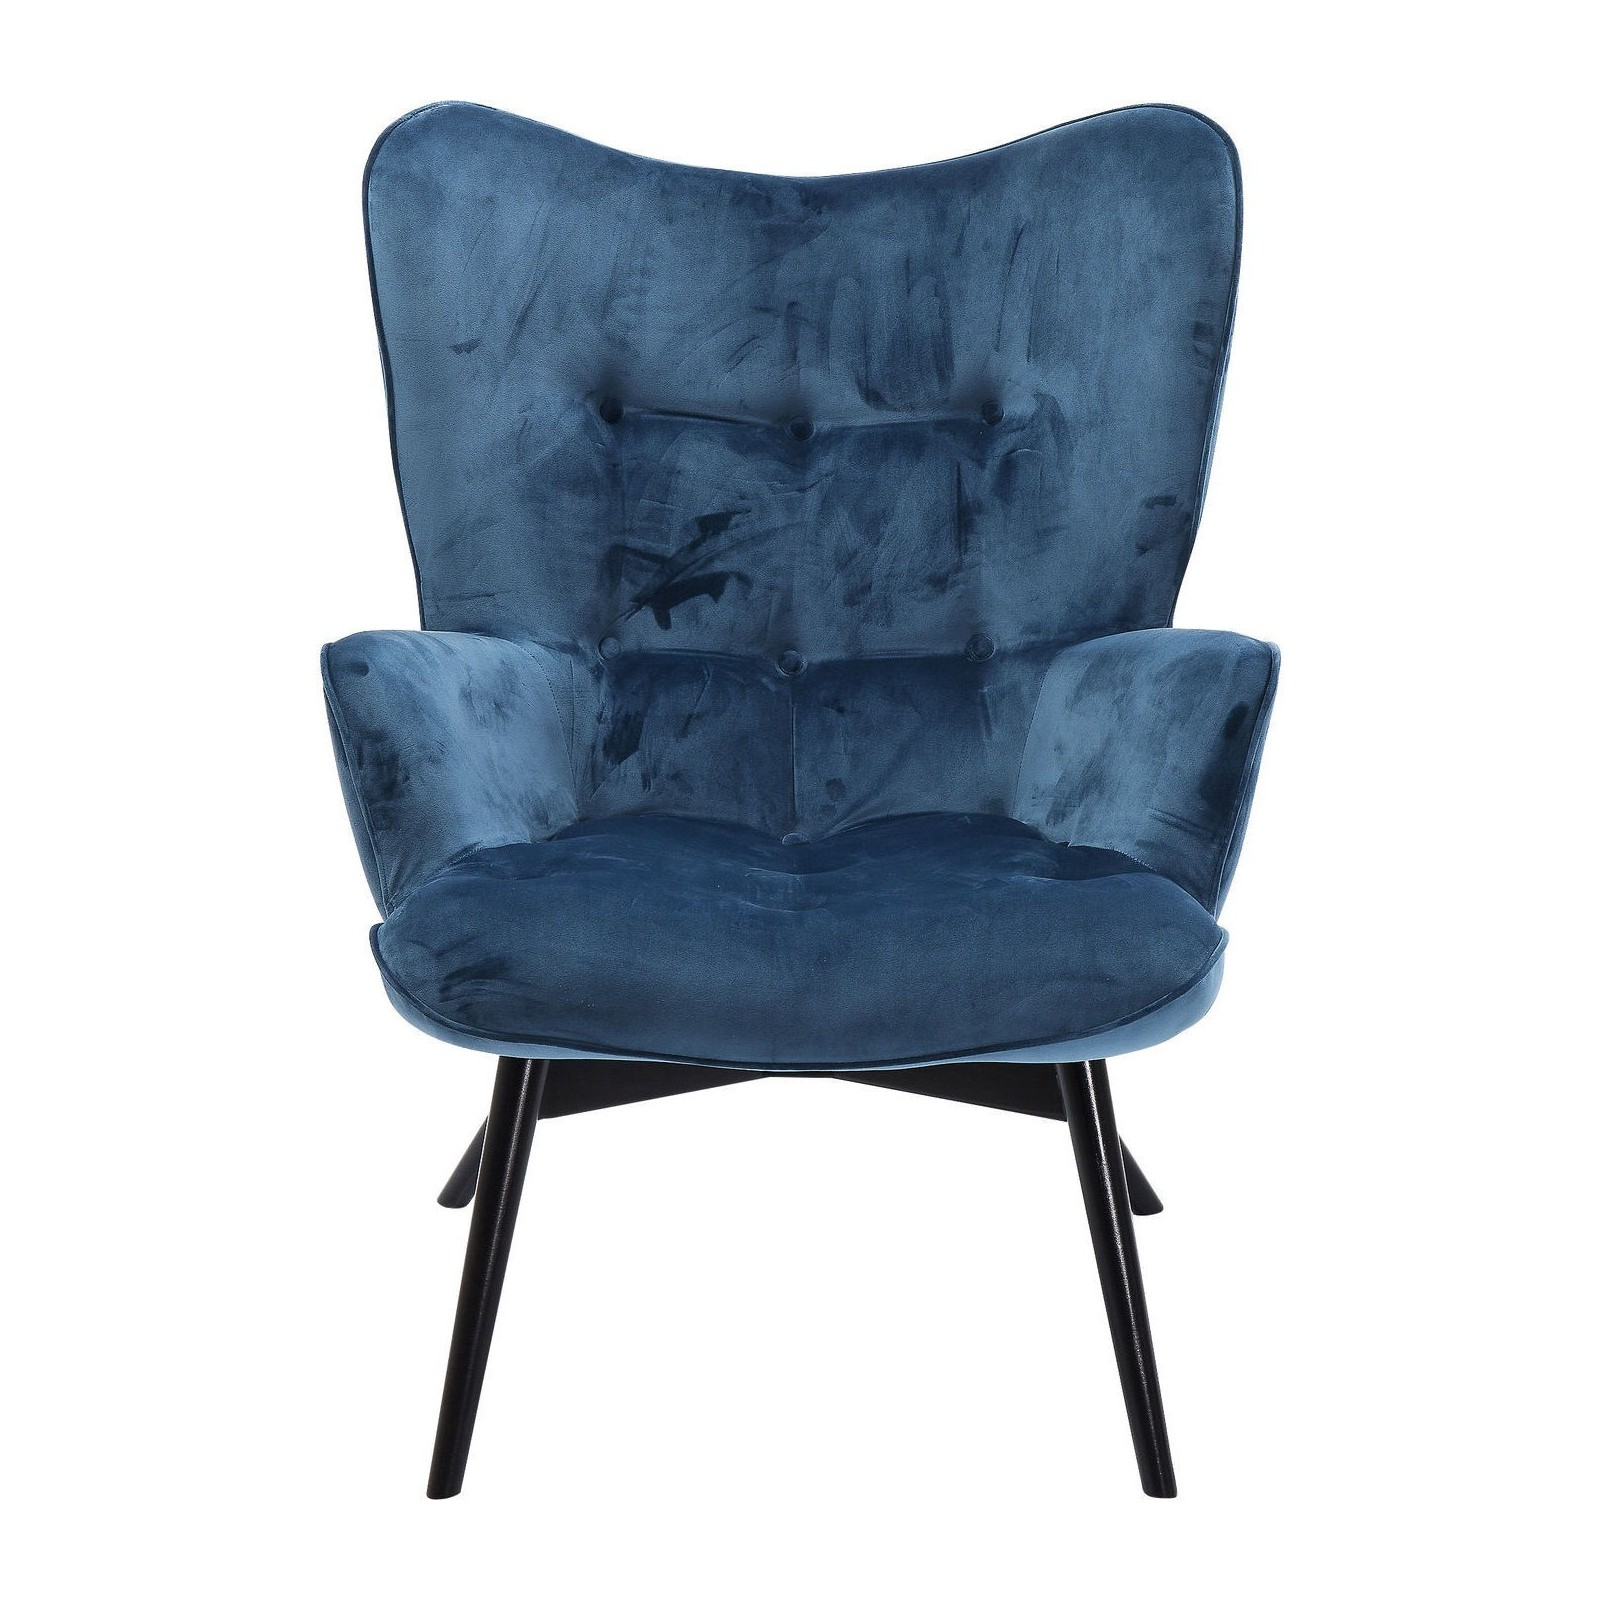 fauteuil en velours bleu site de v tements en jean la mode. Black Bedroom Furniture Sets. Home Design Ideas